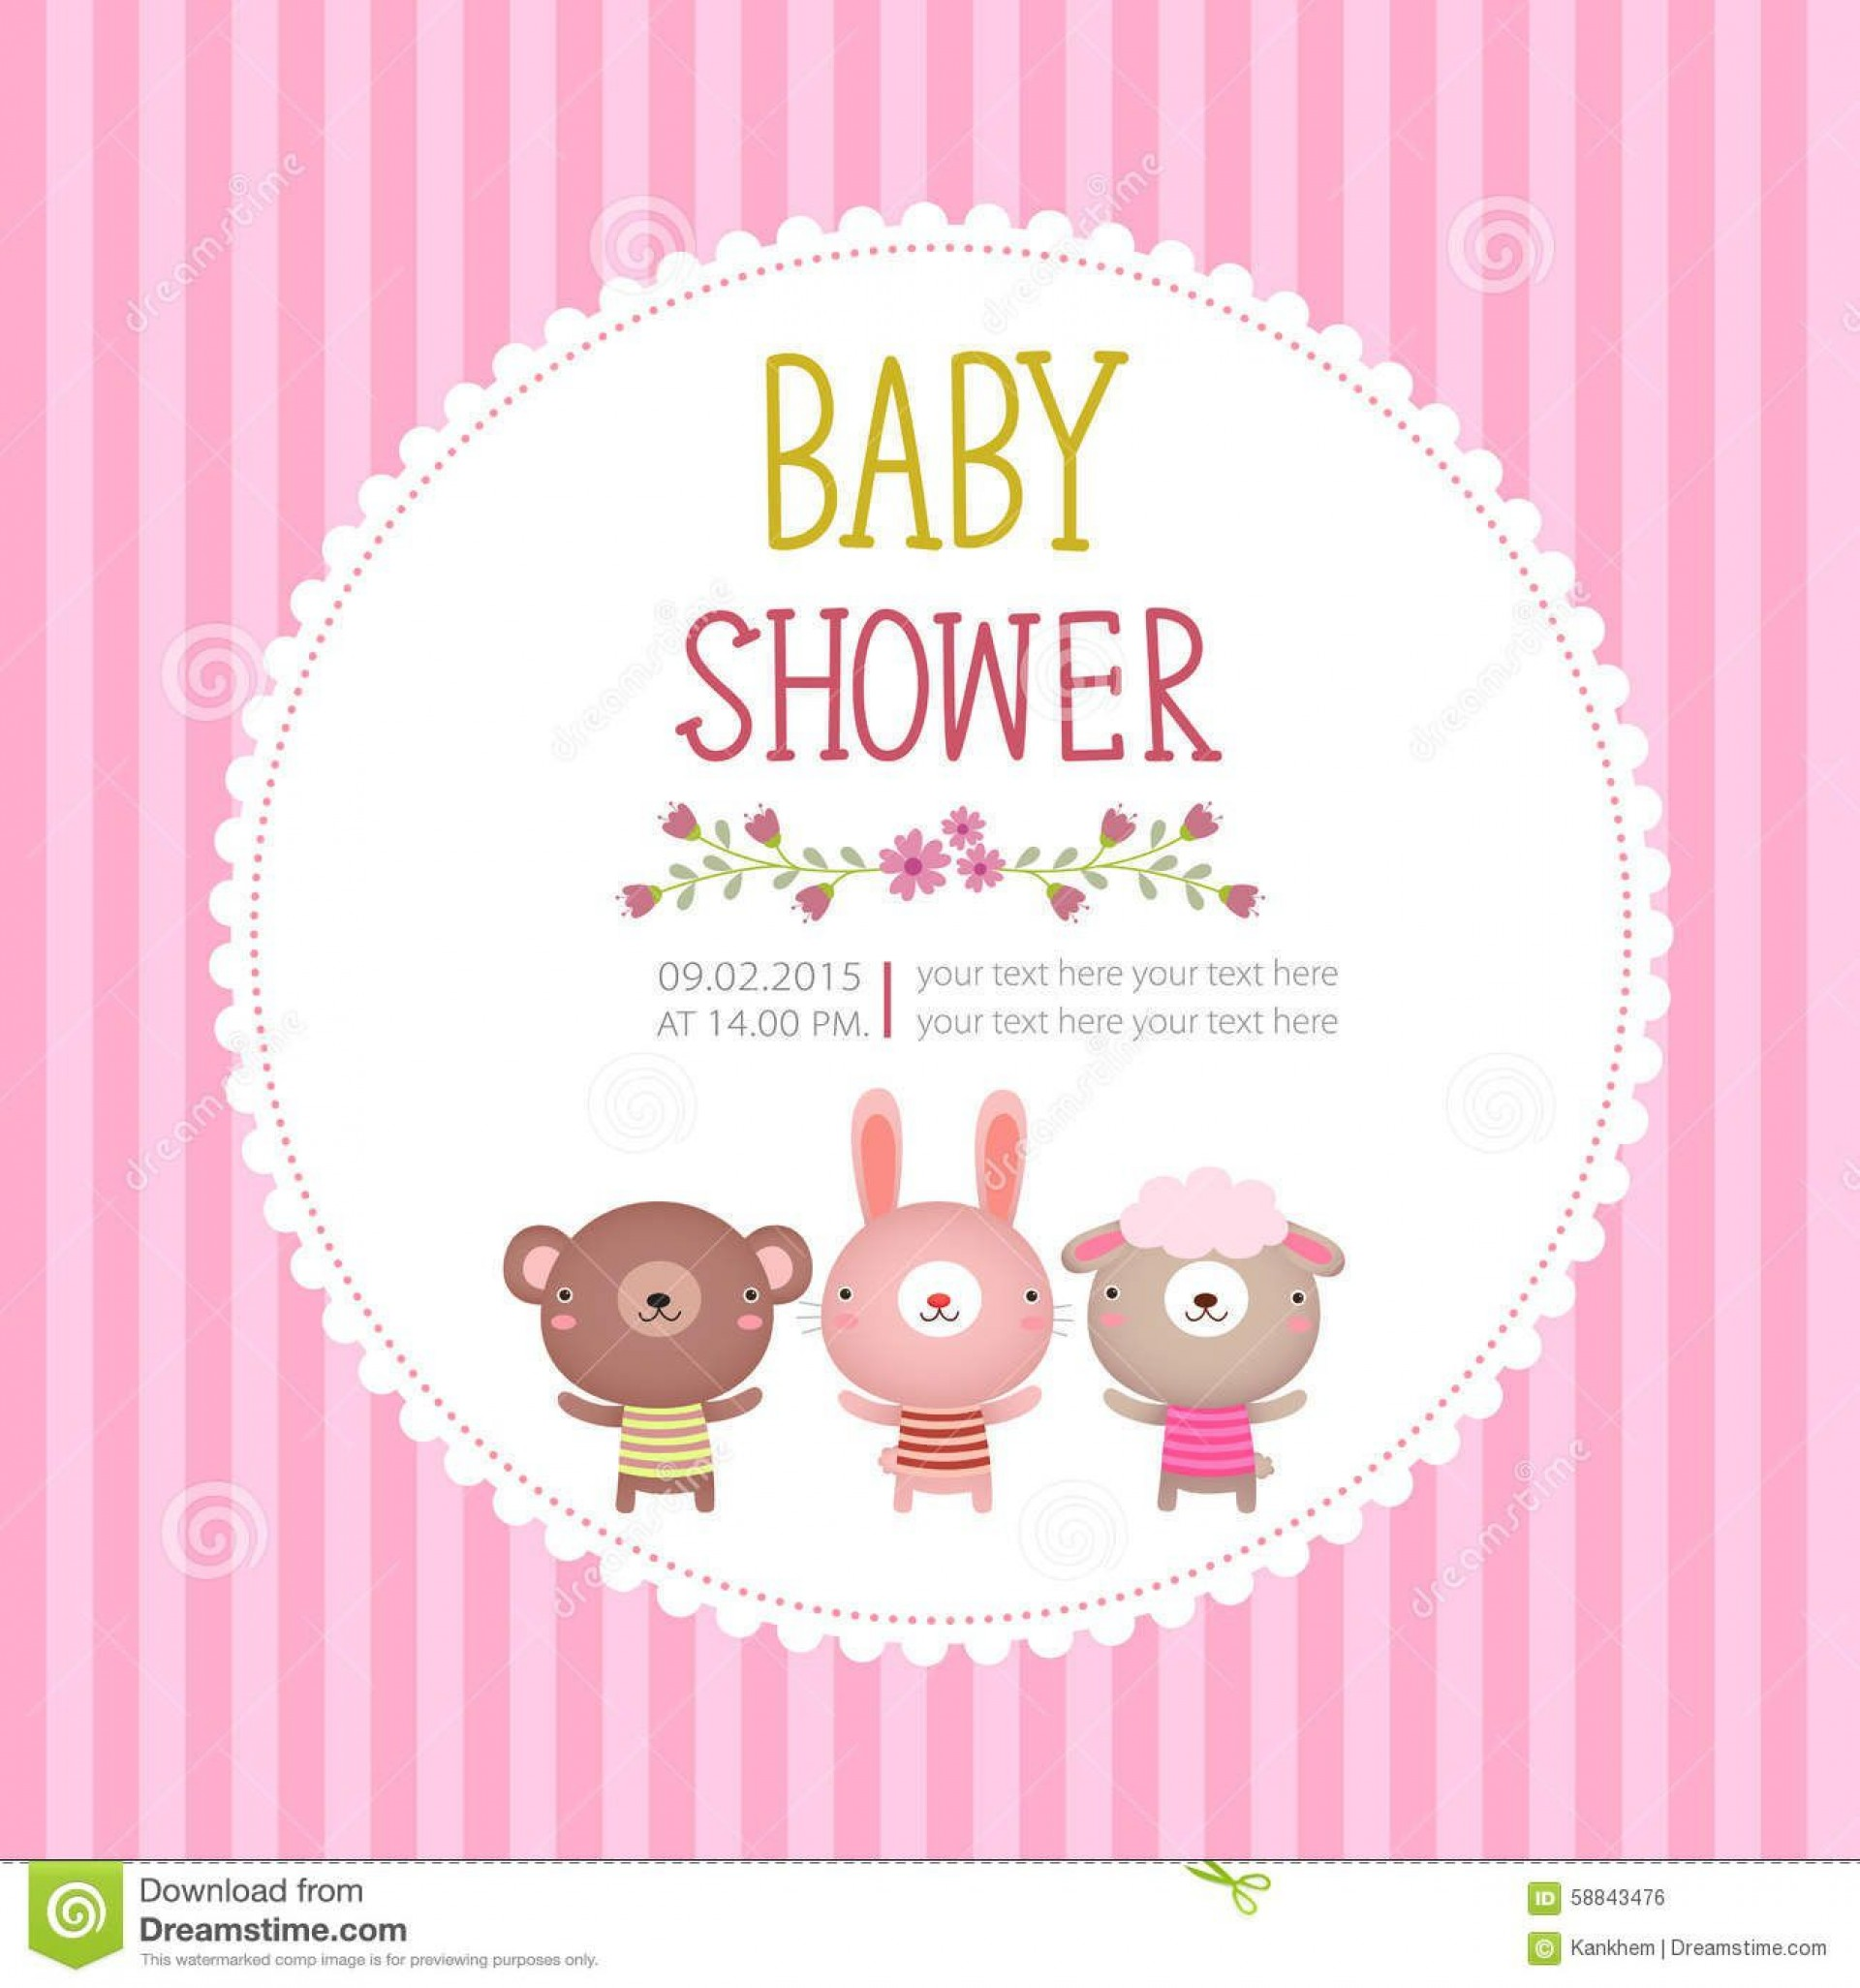 003 Shocking Baby Shower Invitation Card Template Free Download Highest Quality  Indian1920